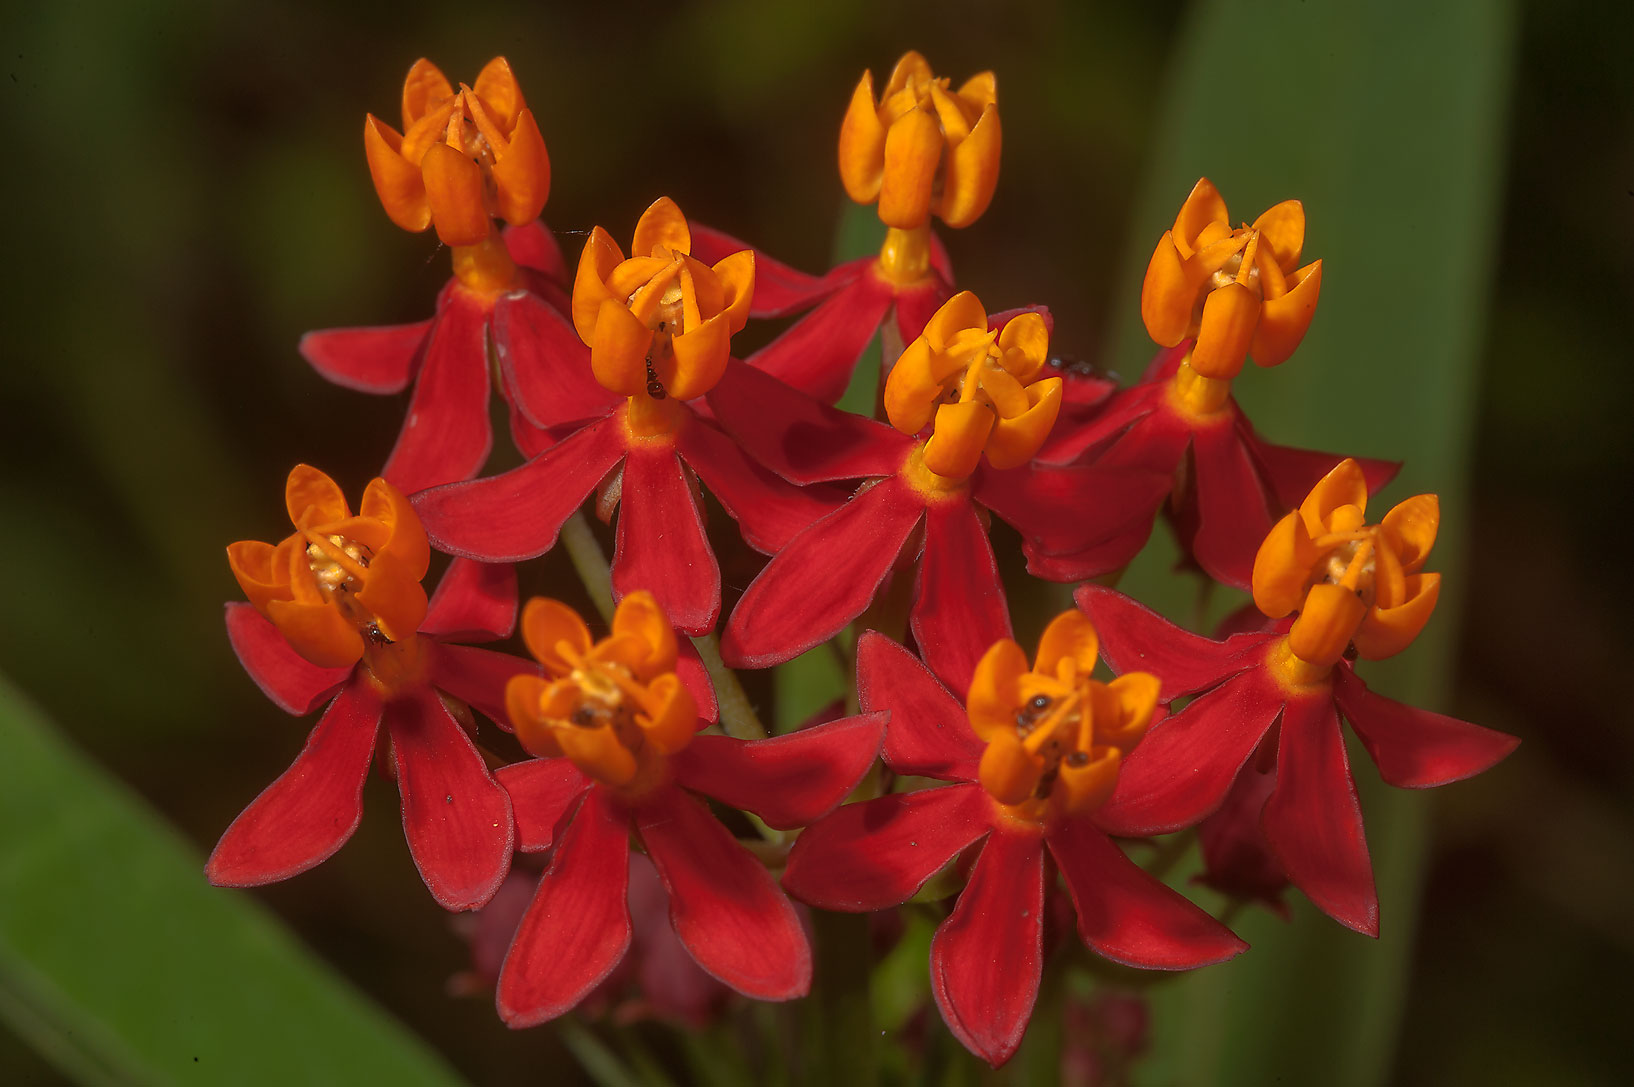 Red flowers of milkweed (Asclepias curassavica...Gardens. Humble (Houston area), Texas